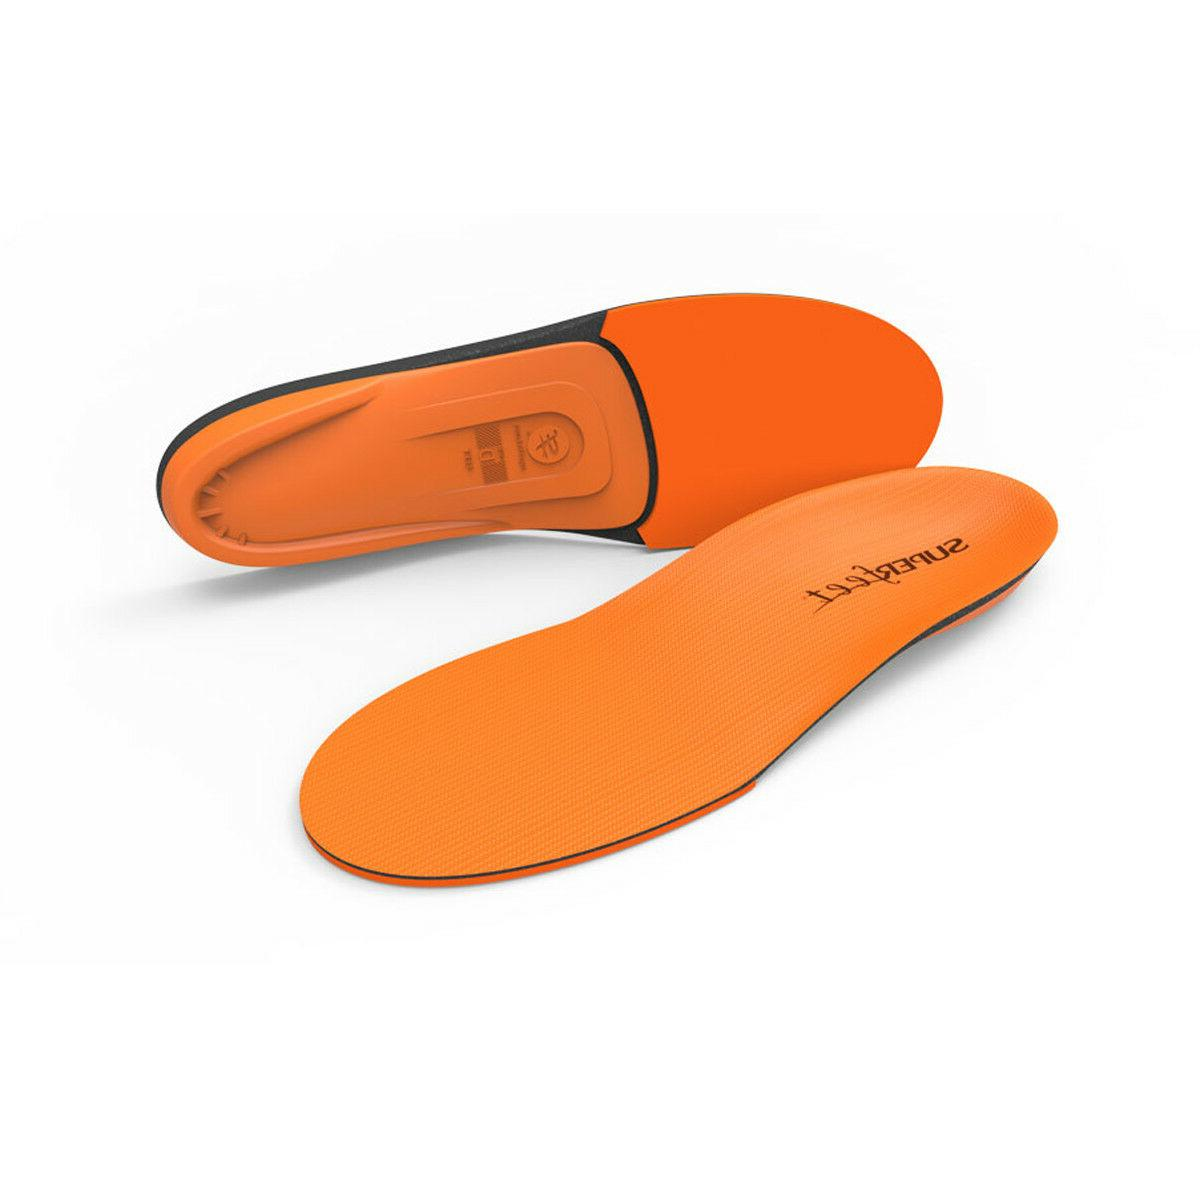 new orange insole arch support orthotic shoe